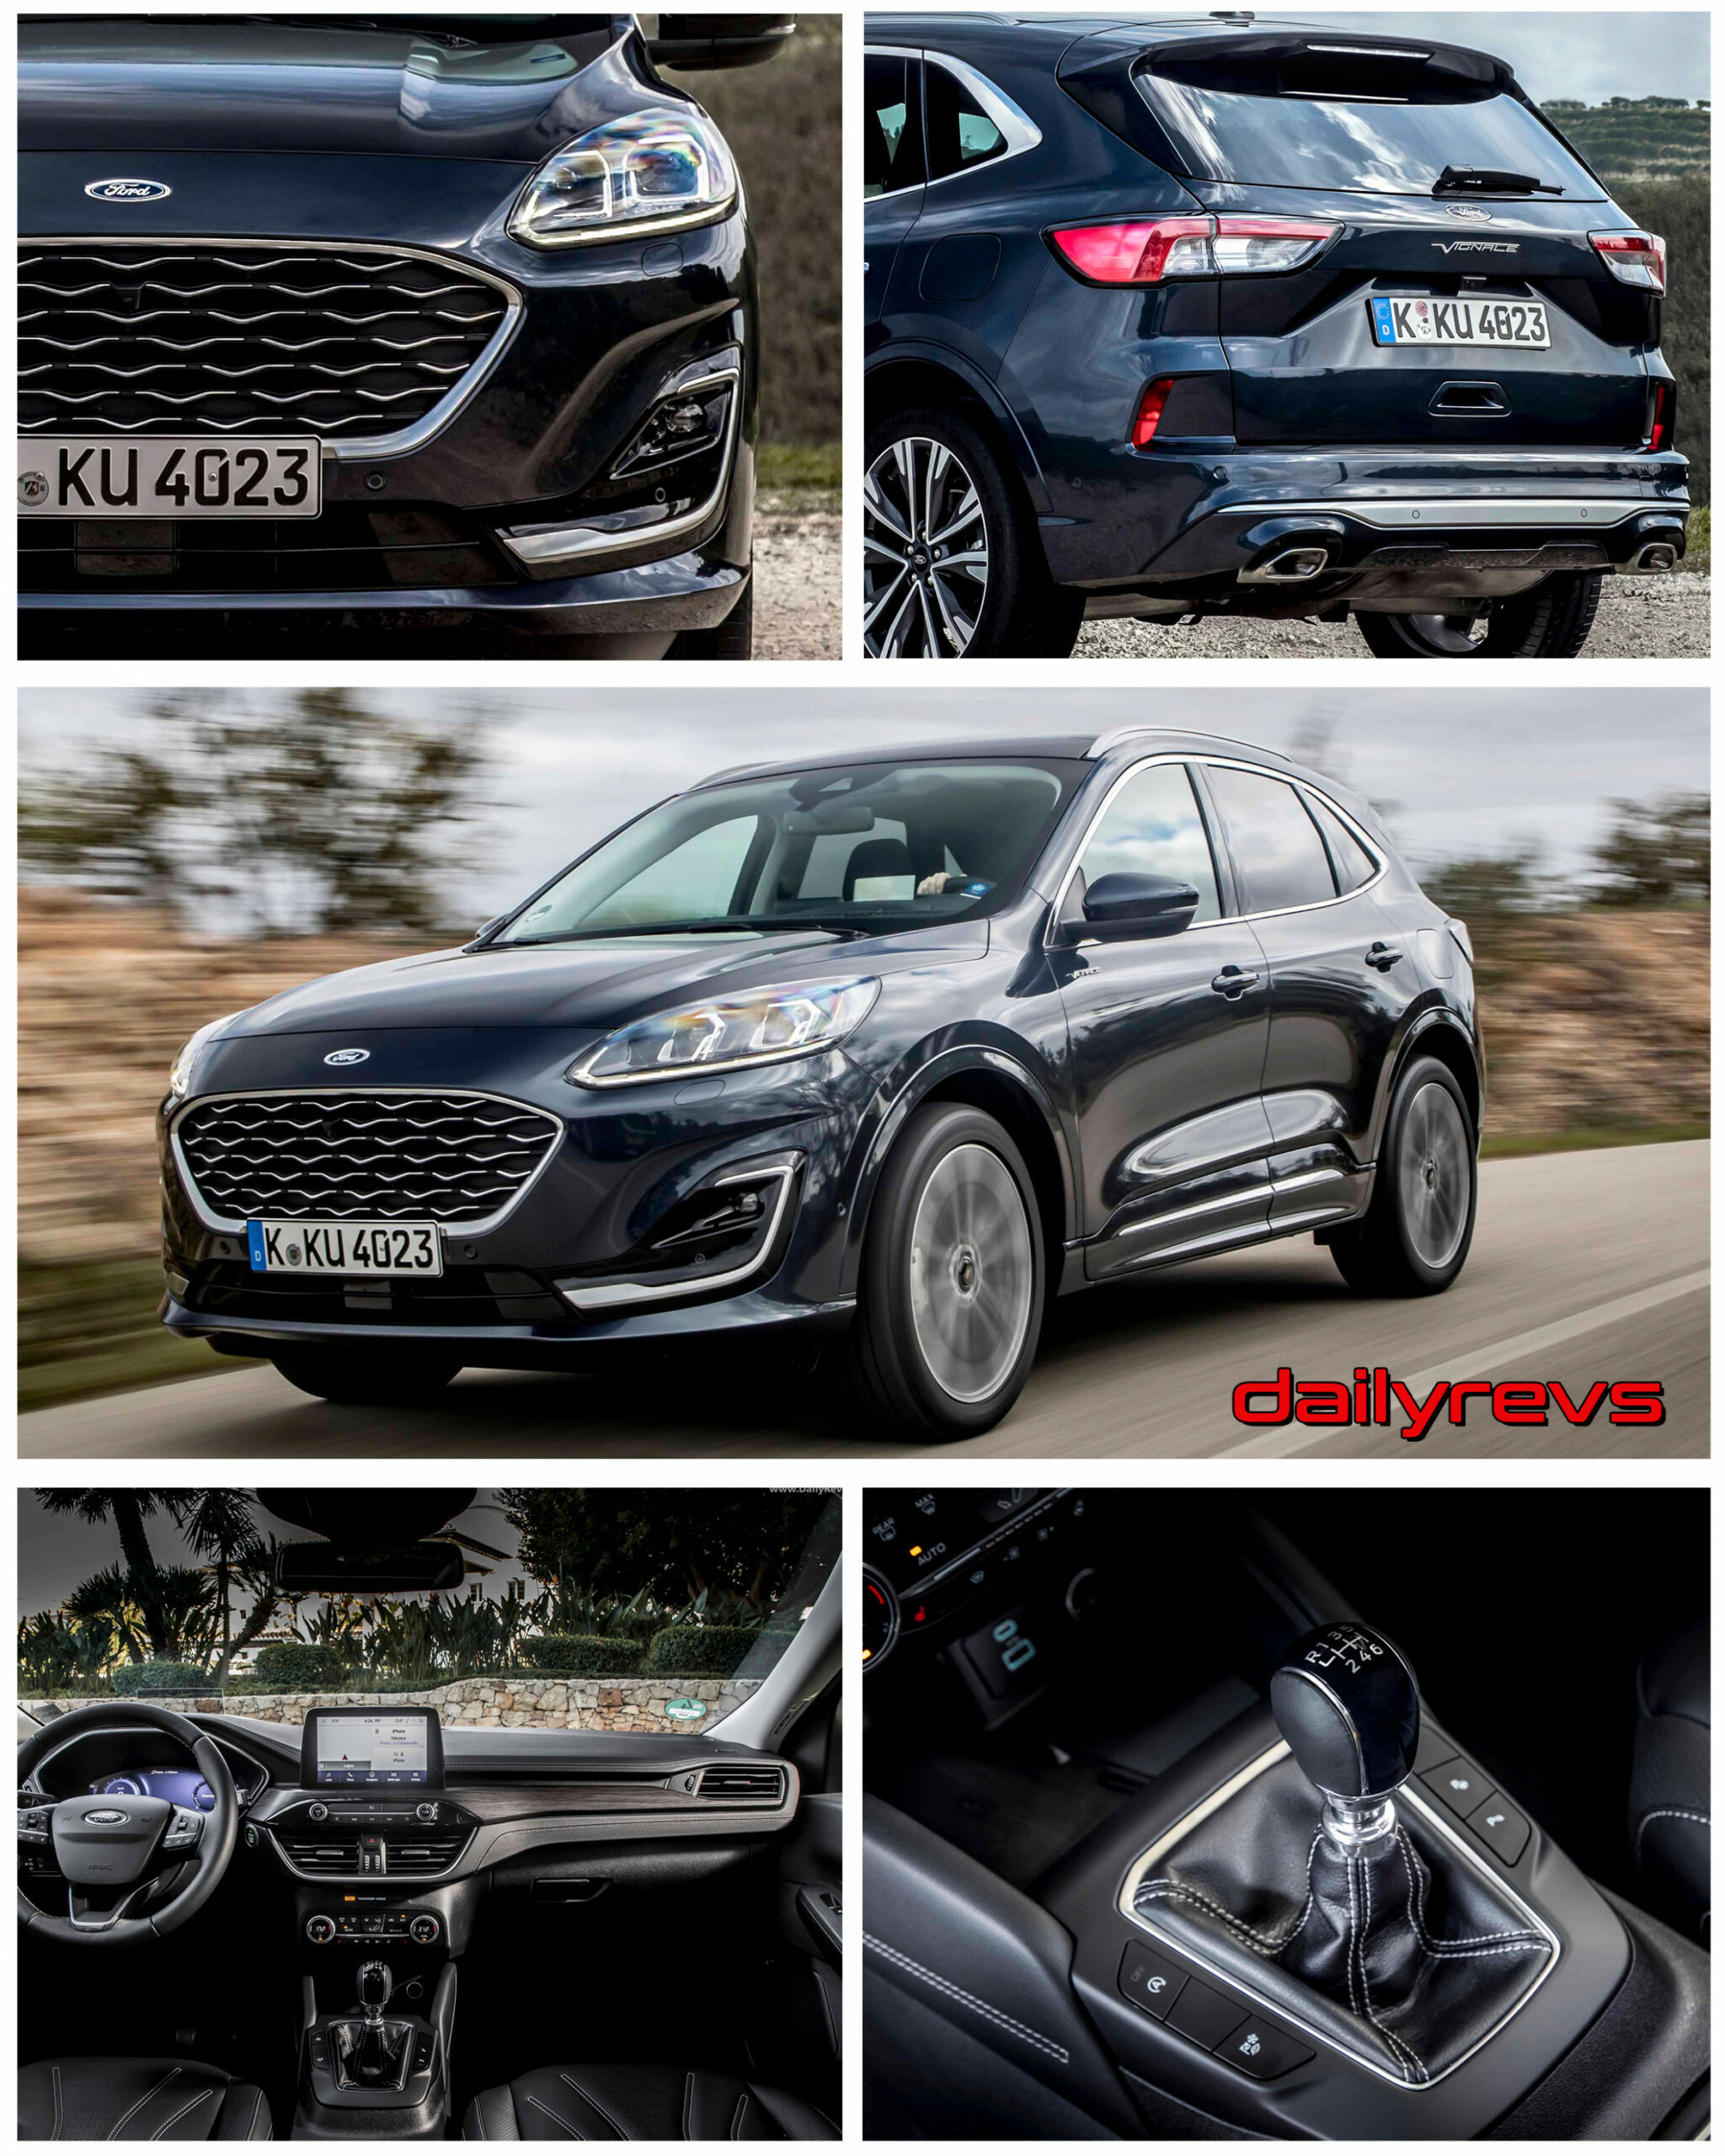 8 Ford Kuga Vignale Hybrid - HD Pics, Videos, Specs & Info ...